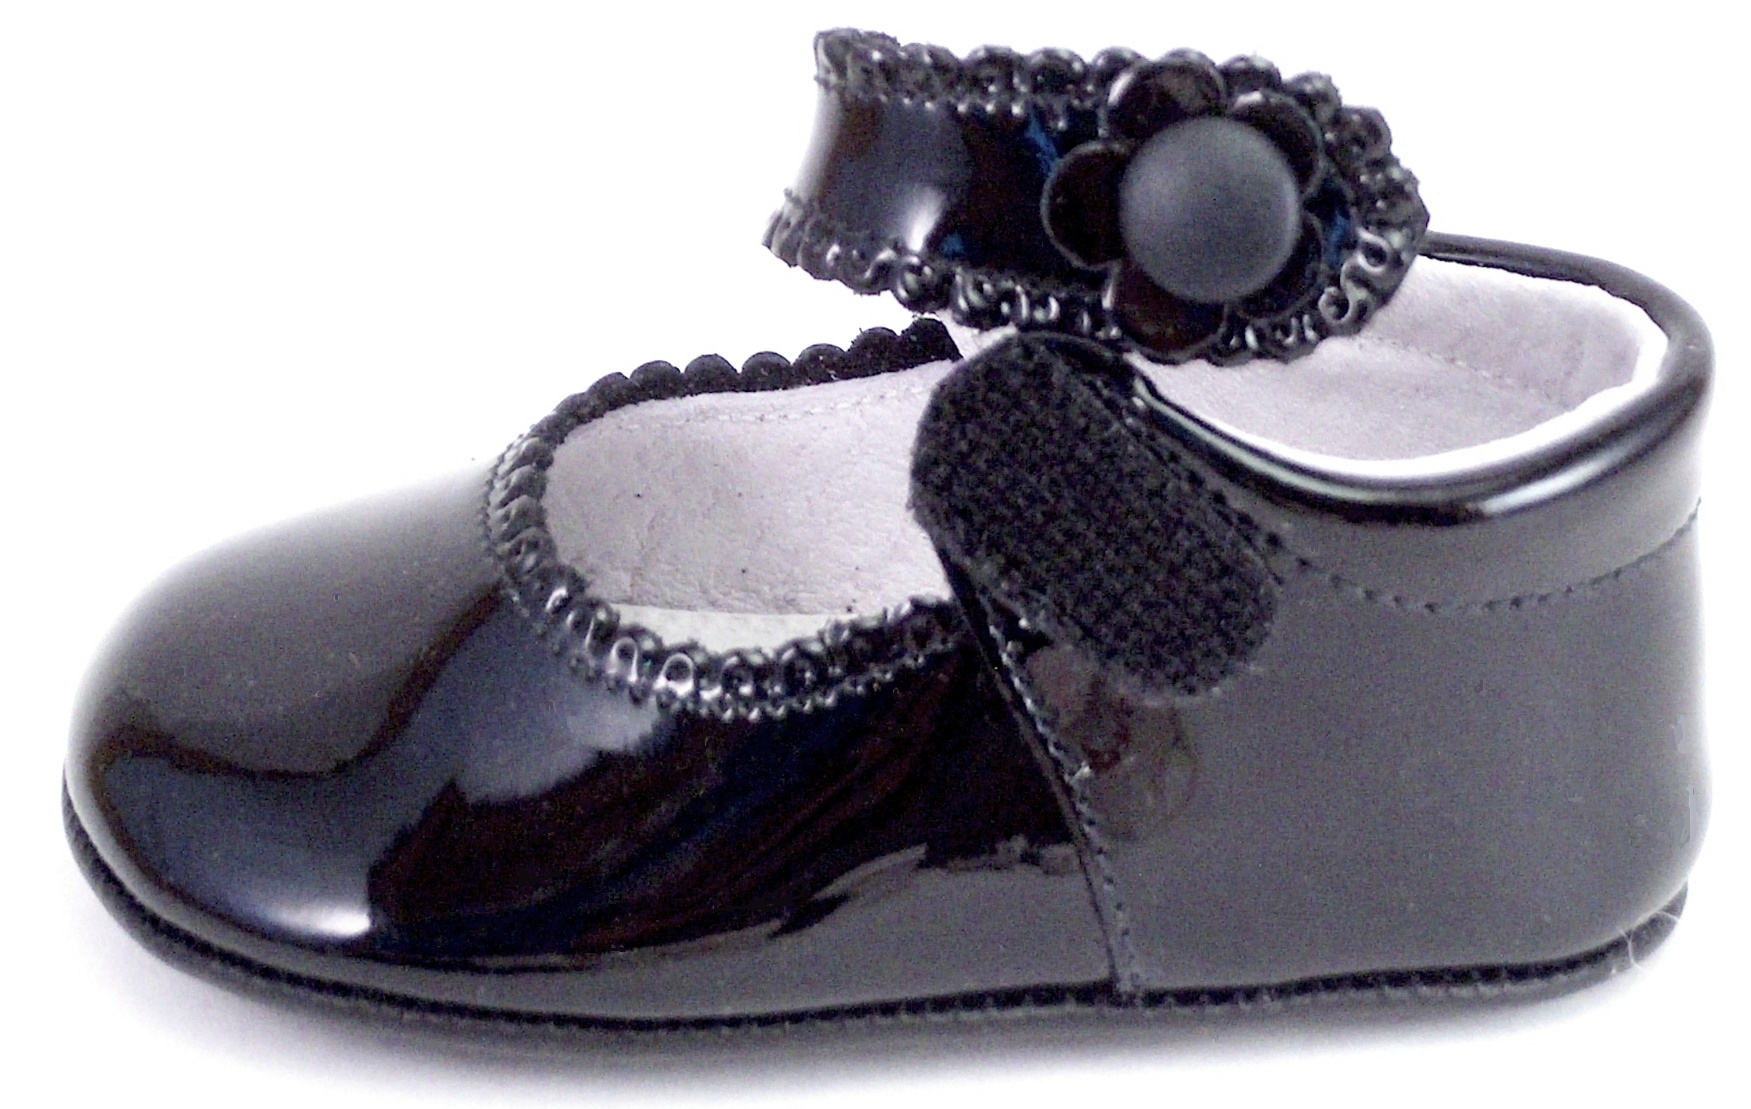 Find black patent leather shoes from a vast selection of Baby and Toddler Shoes. Get great deals on eBay!